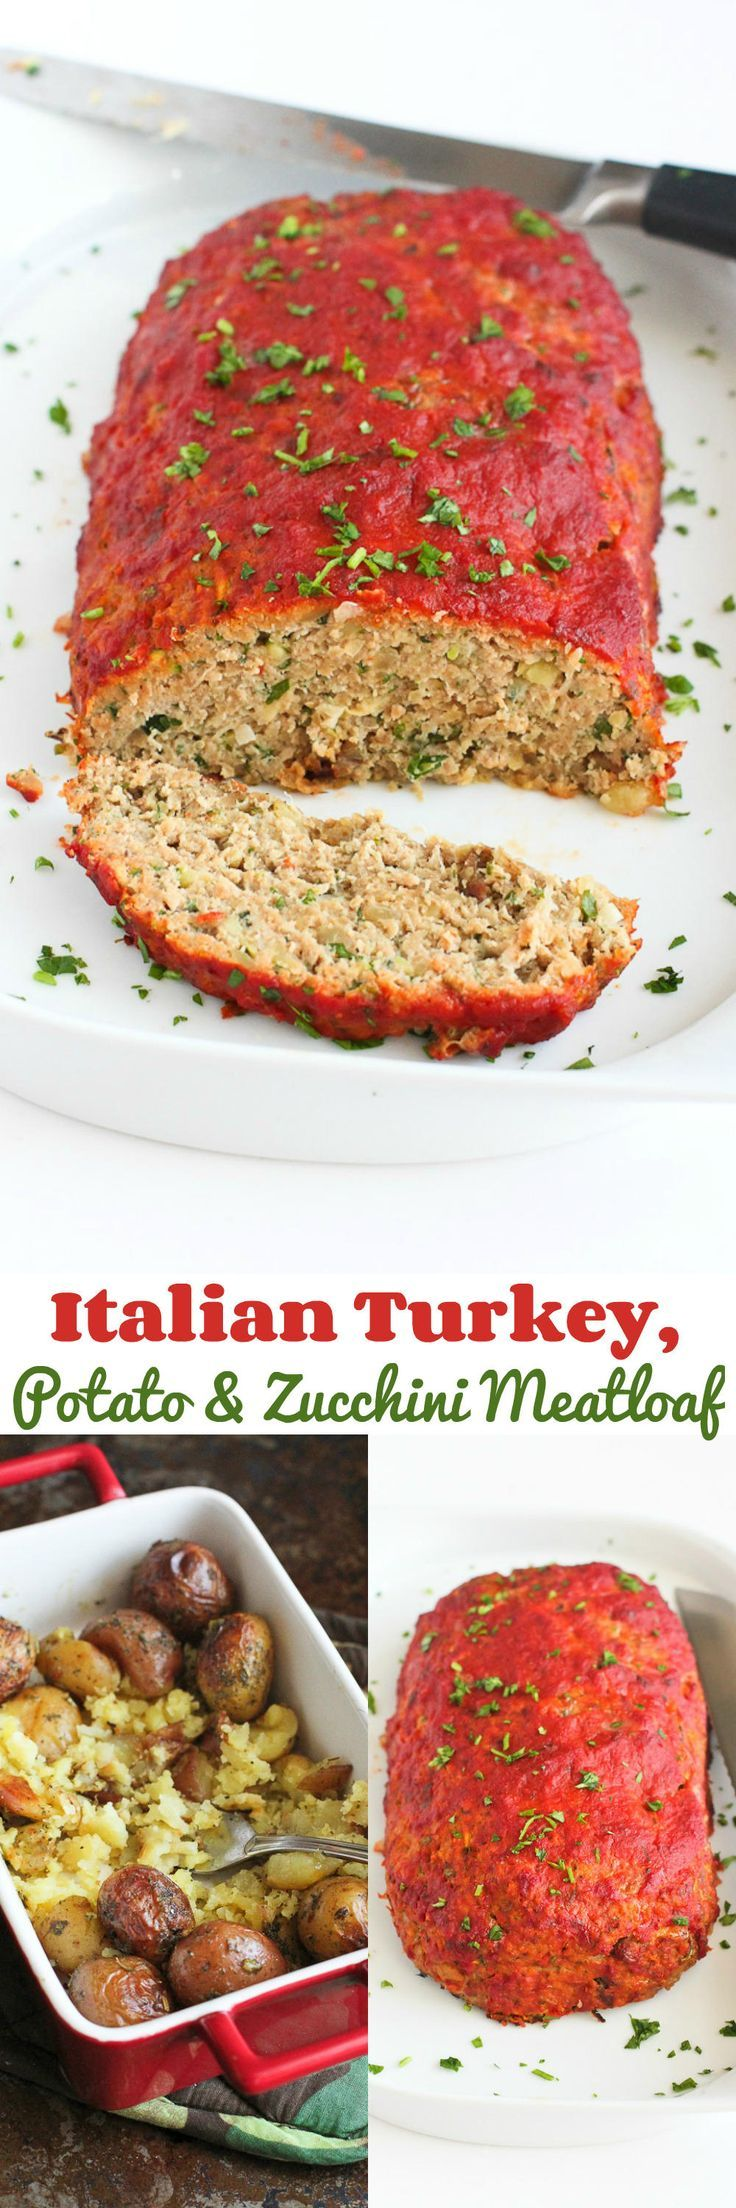 Italian Turkey, Potato and Zucchini Meatloaf…Classic comfort food with a healthy twist! 152 calories and 4 Weight Watcher SmartPoints